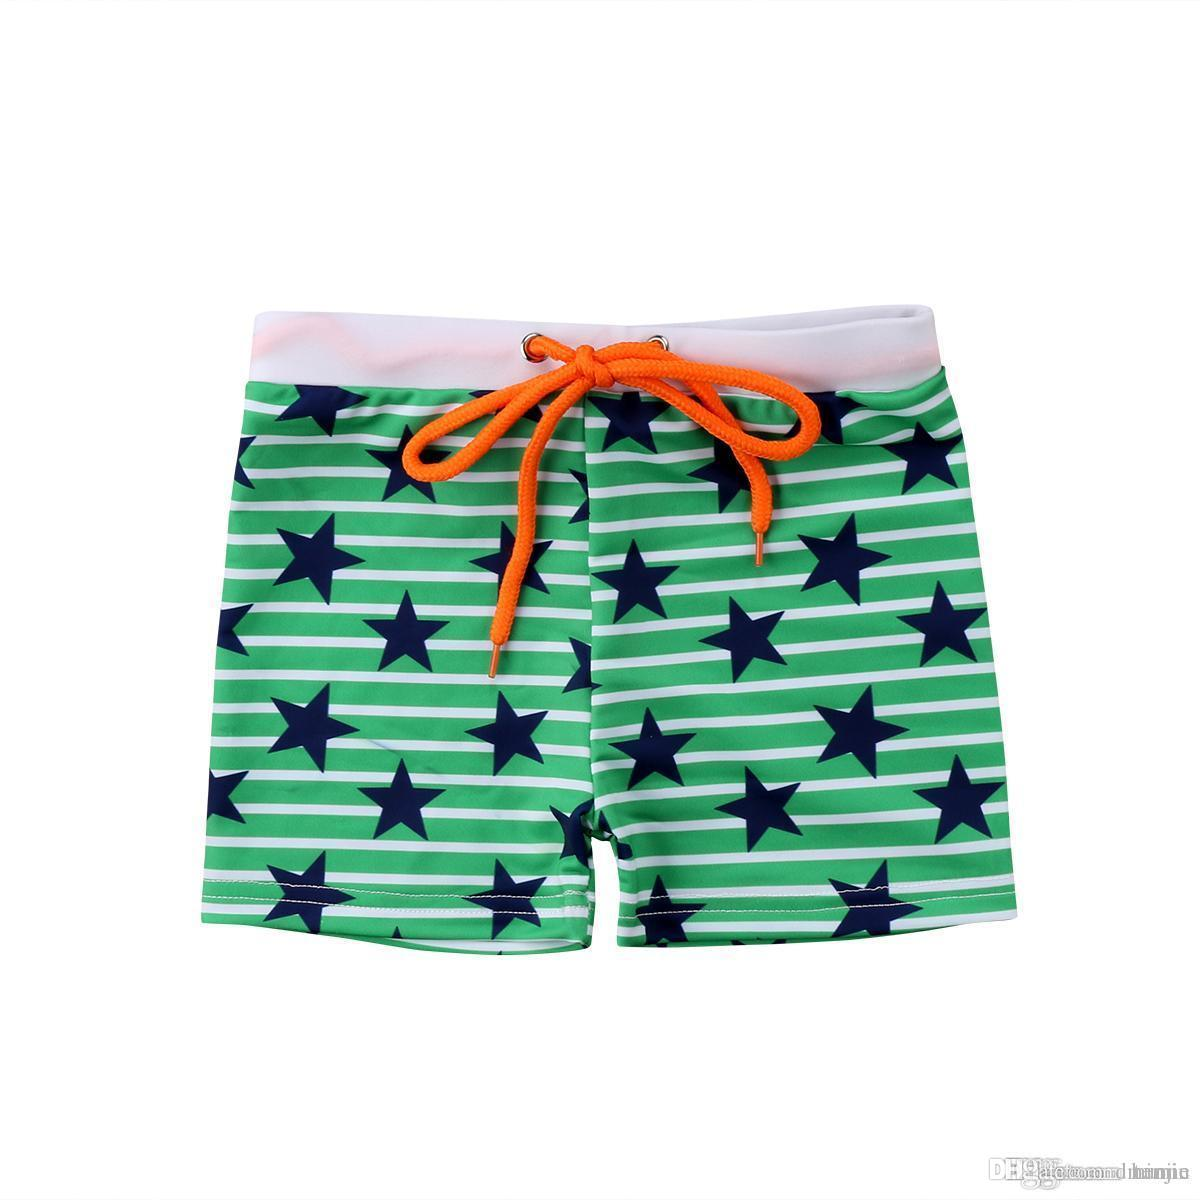 a12d48ab1e Boys Swimming Trunks Swim Shorts Skull Shark Stars Stripe Printed Summer Swimsuit  Beachwear Kids Summer Trunks 6M-6Y Men's Trunks Cheap Men's Trunks Boys ...